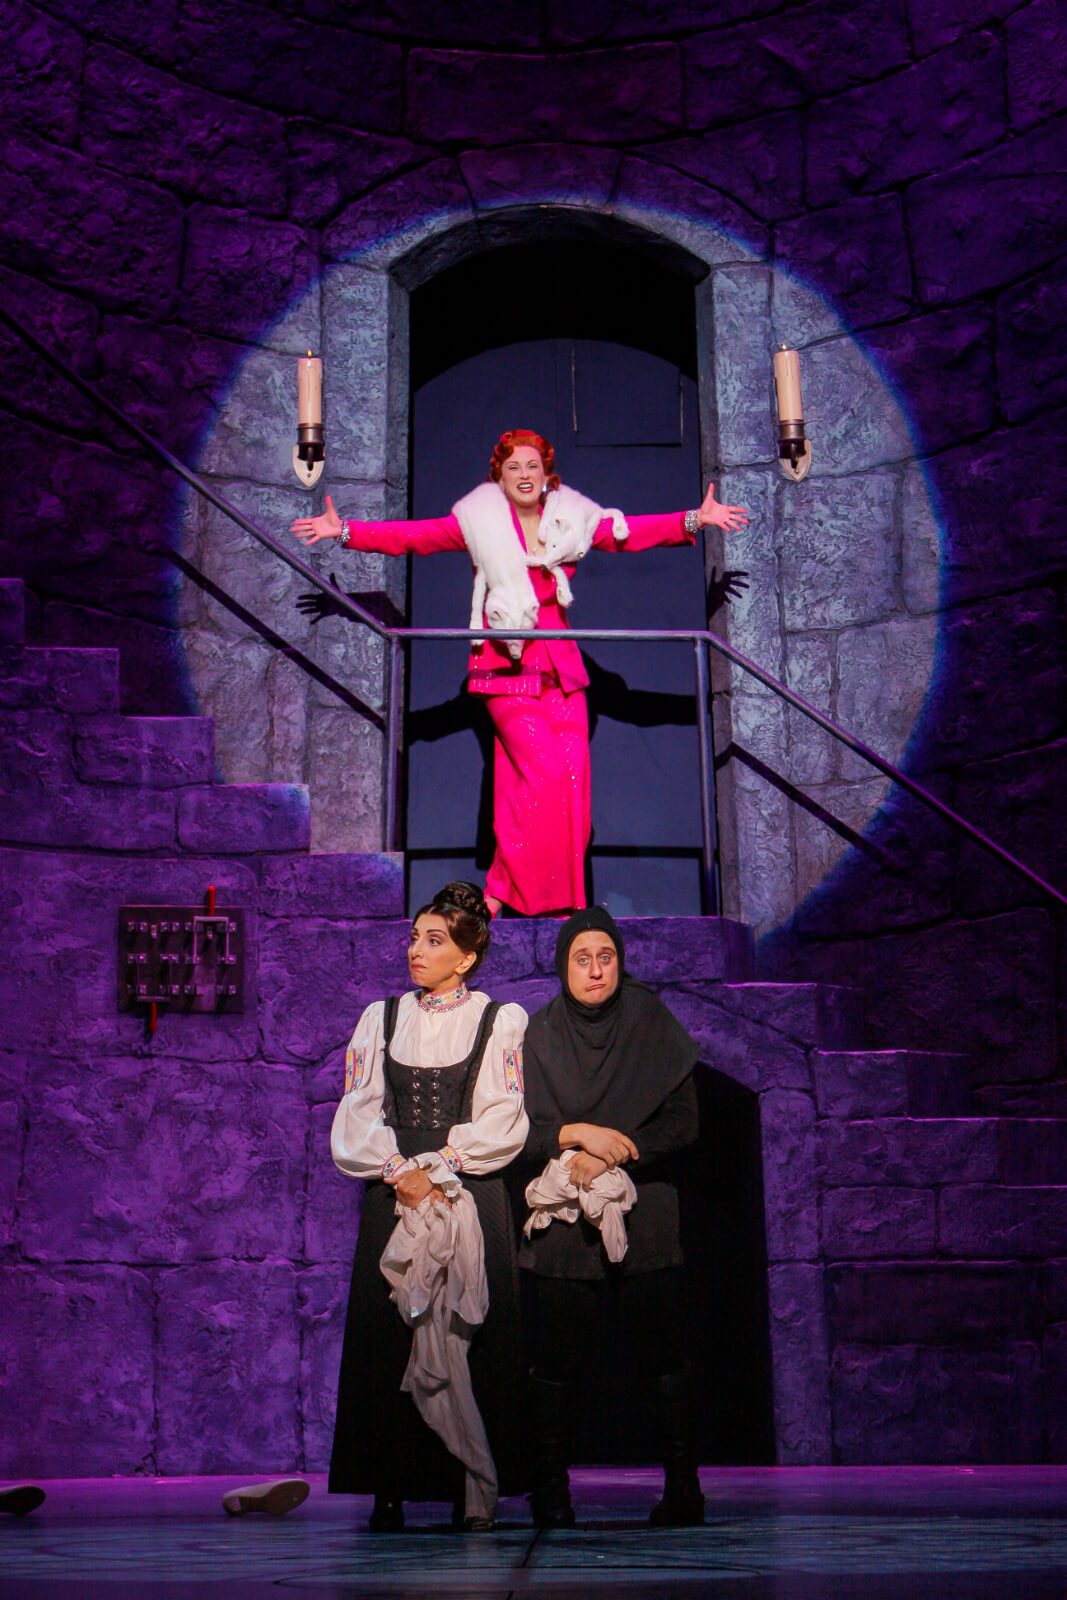 """Elizabeth (Megan Mullally) sings """"It's Me"""" in a hot pink pant suit high on a stair unit with Frau Blucher (Andrea Martin)and Igor (Chris Fitzgerald) in the foreground."""